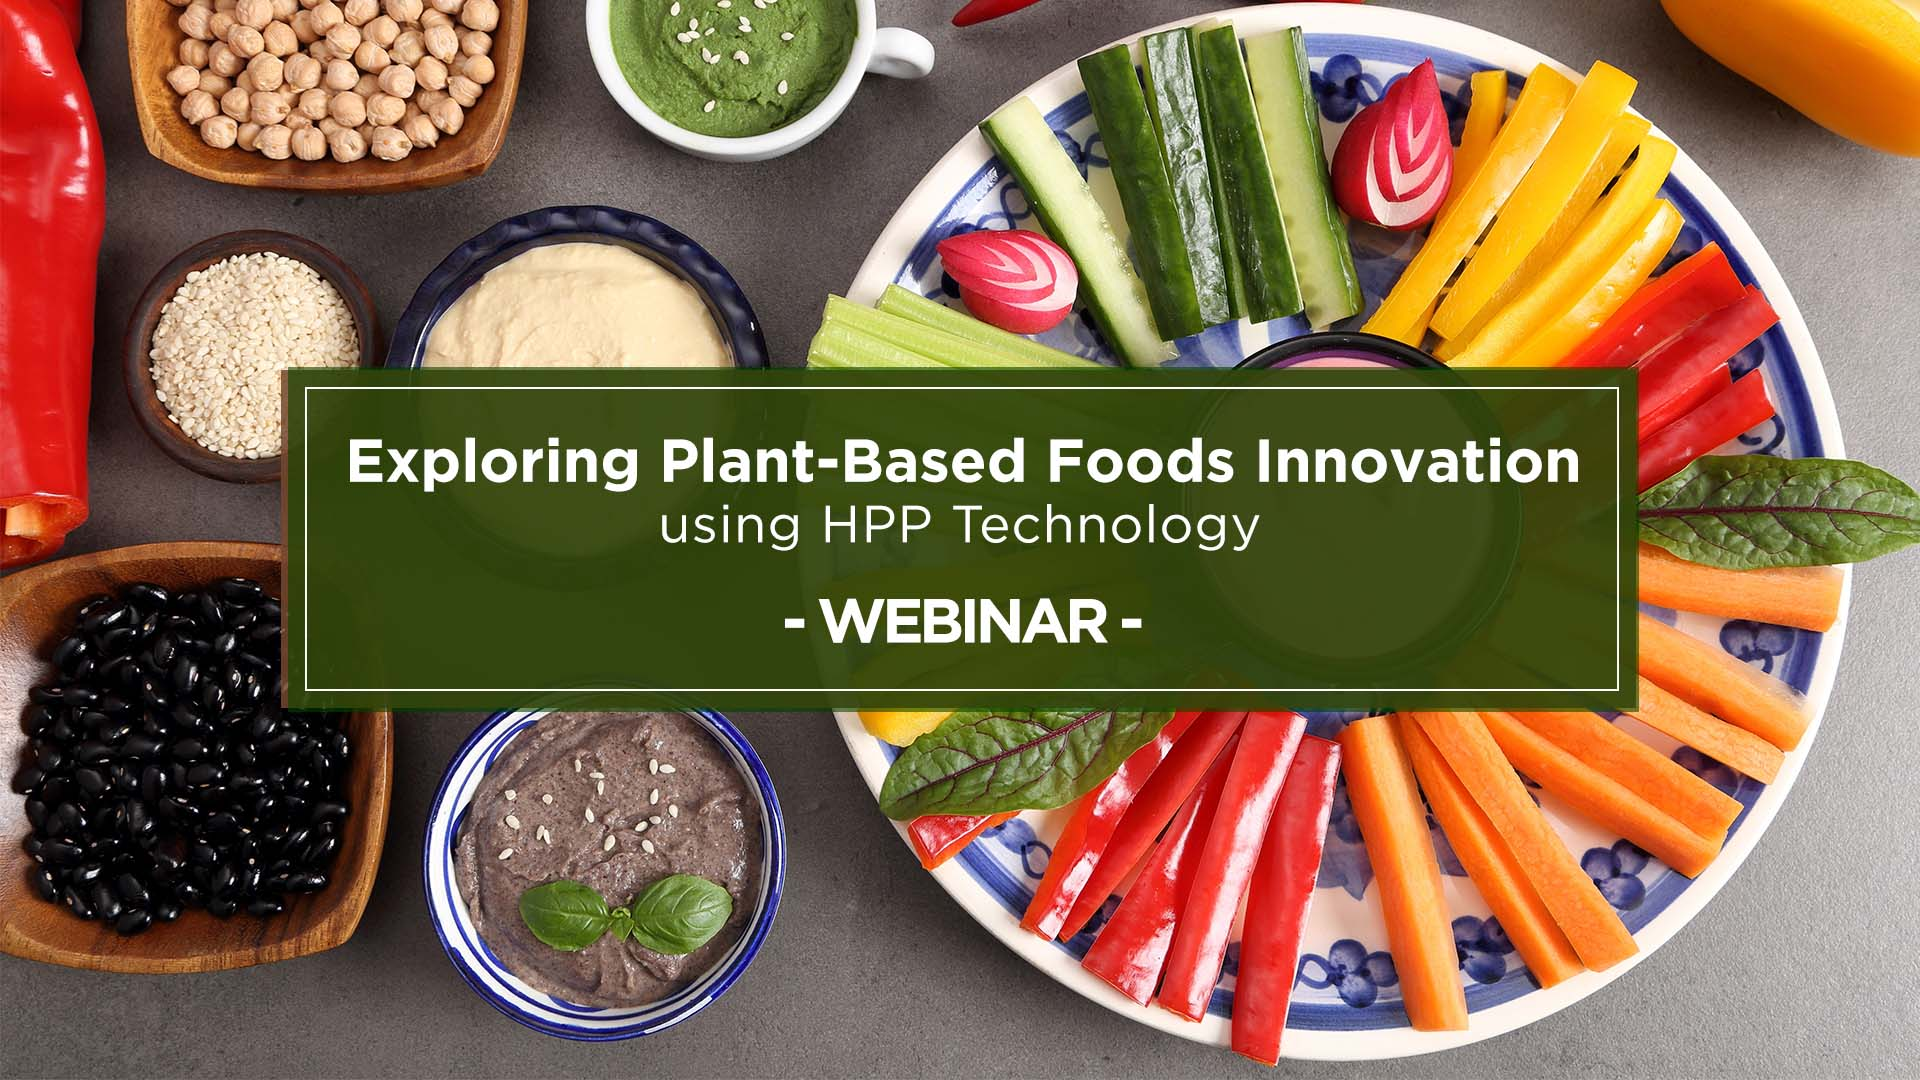 5. WEBINAR PLANT BASED PRODUCTS 1920x1080